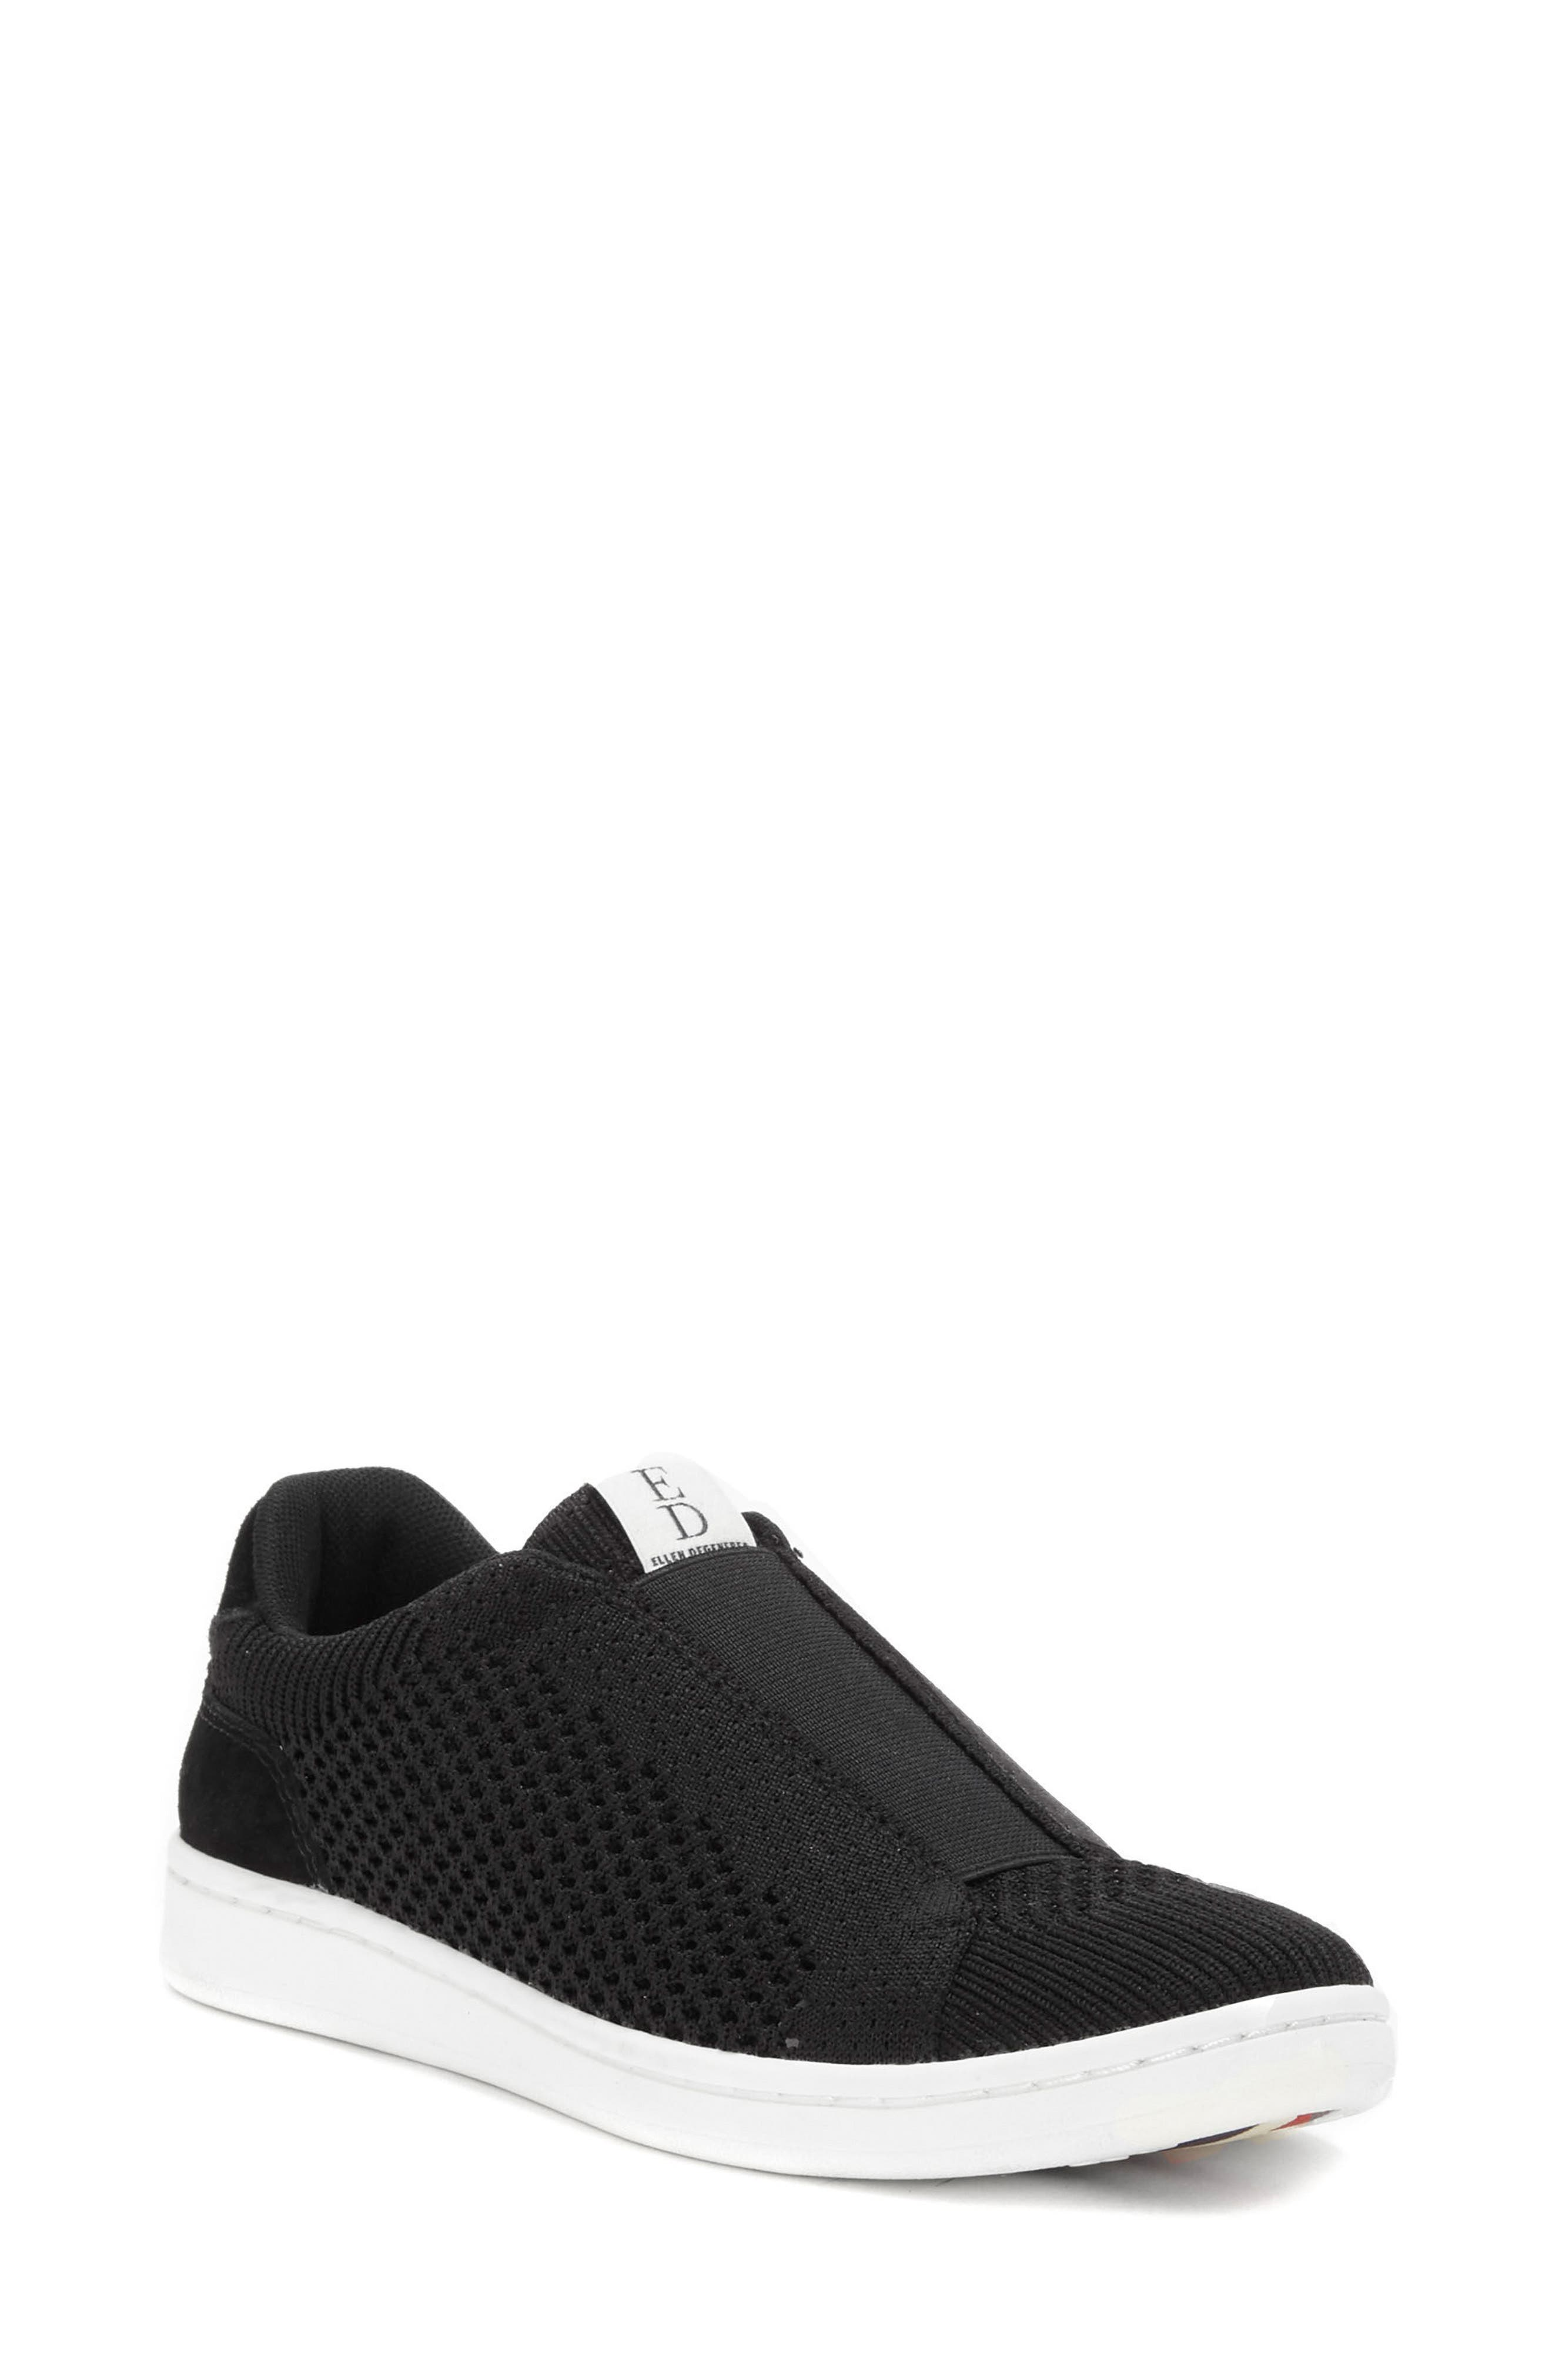 Casbey Slip-On Sneaker,                             Main thumbnail 1, color,                             002